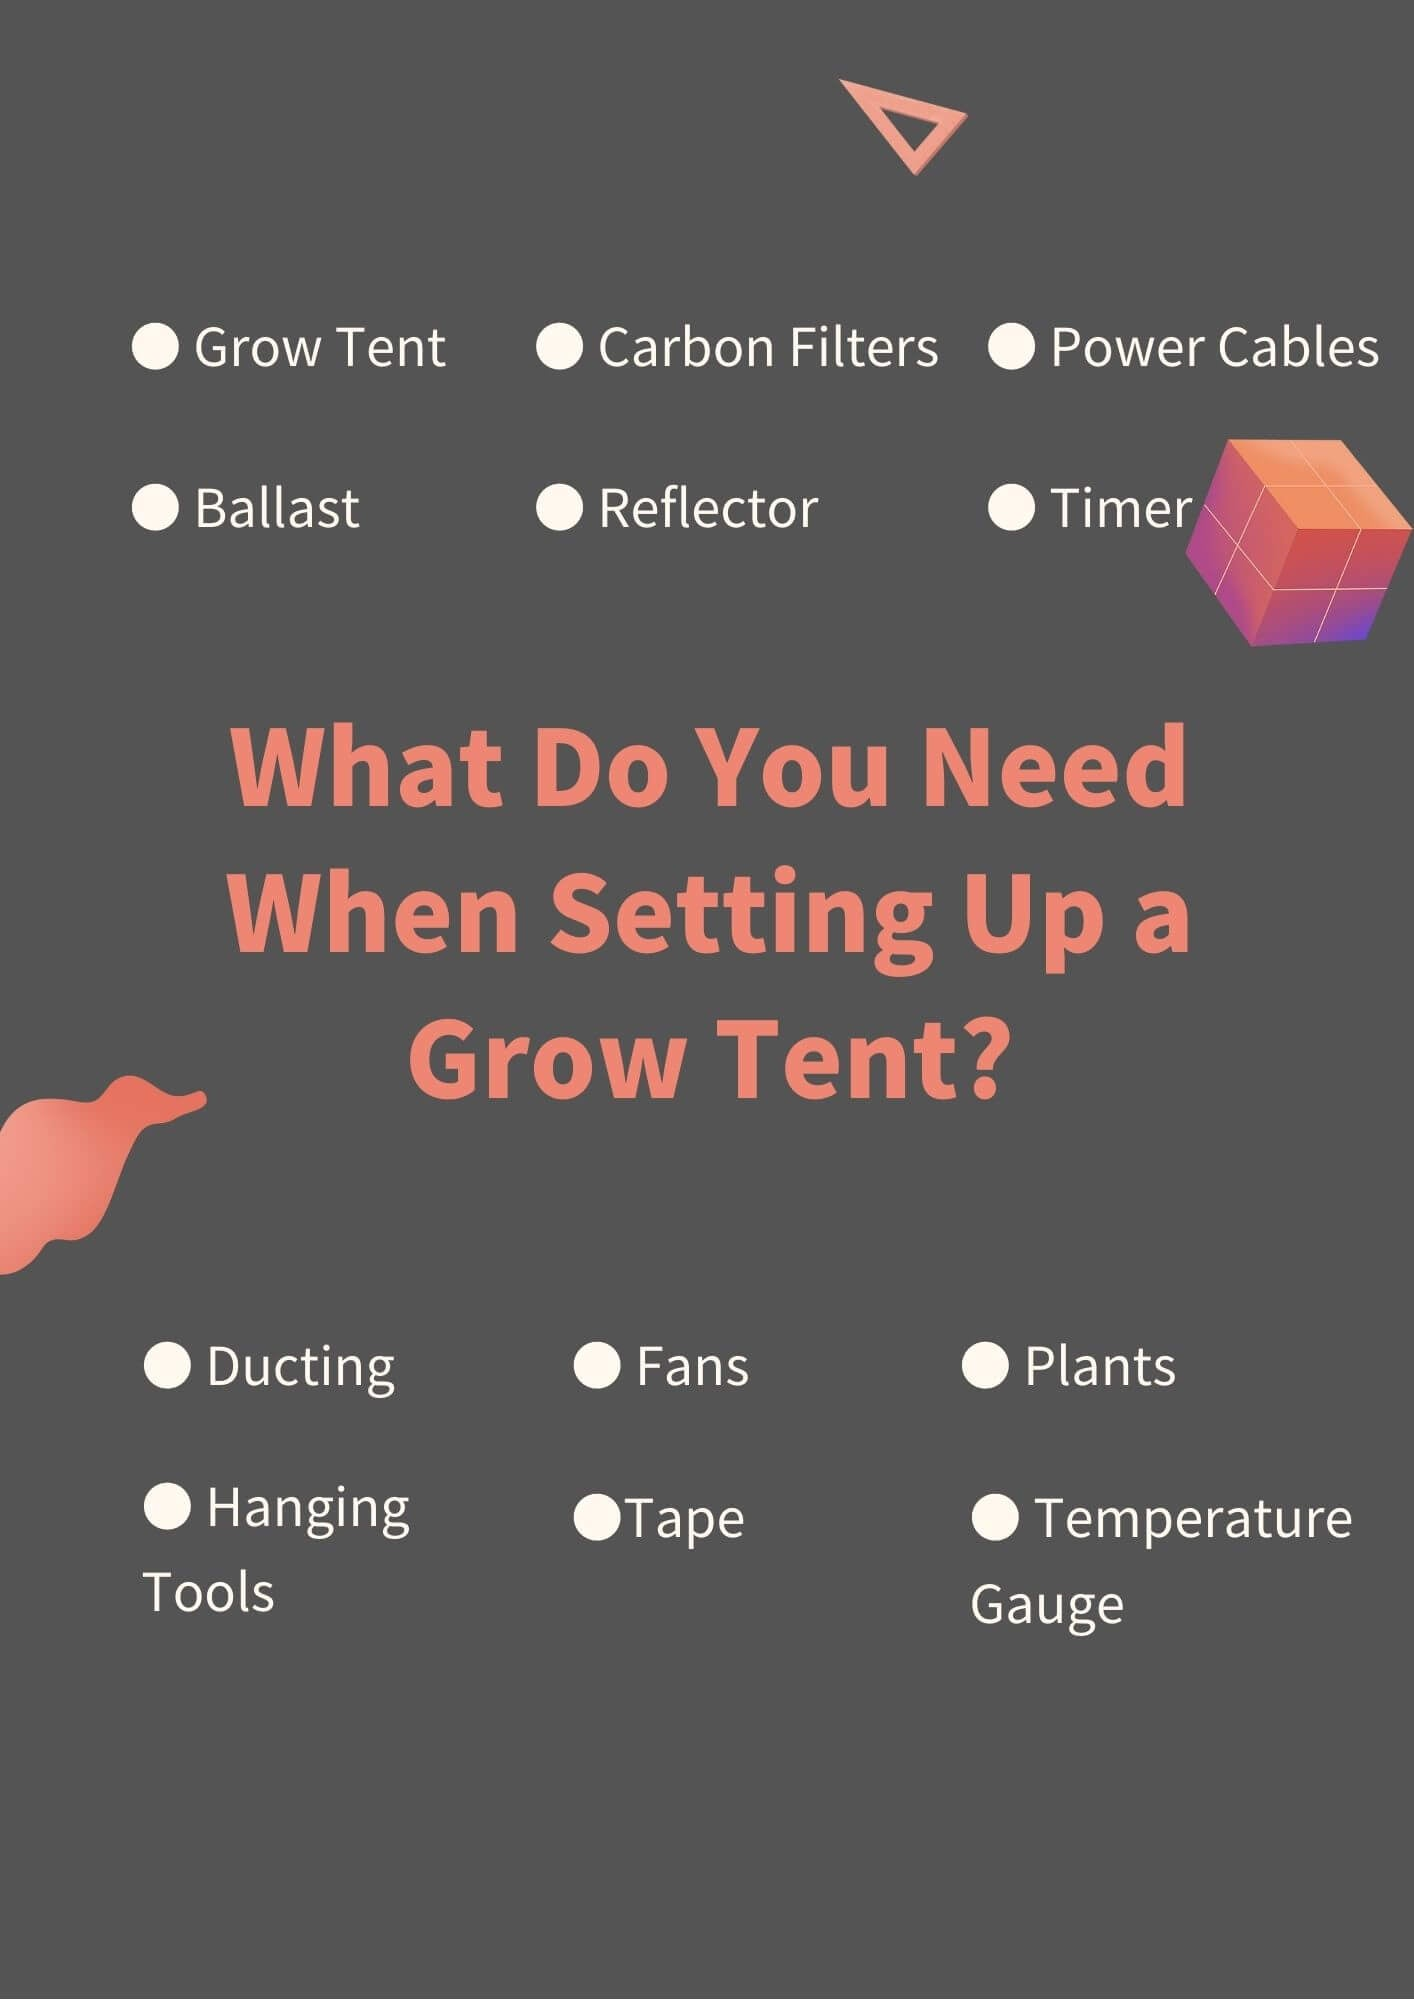 what do you need when setting up a grow tent